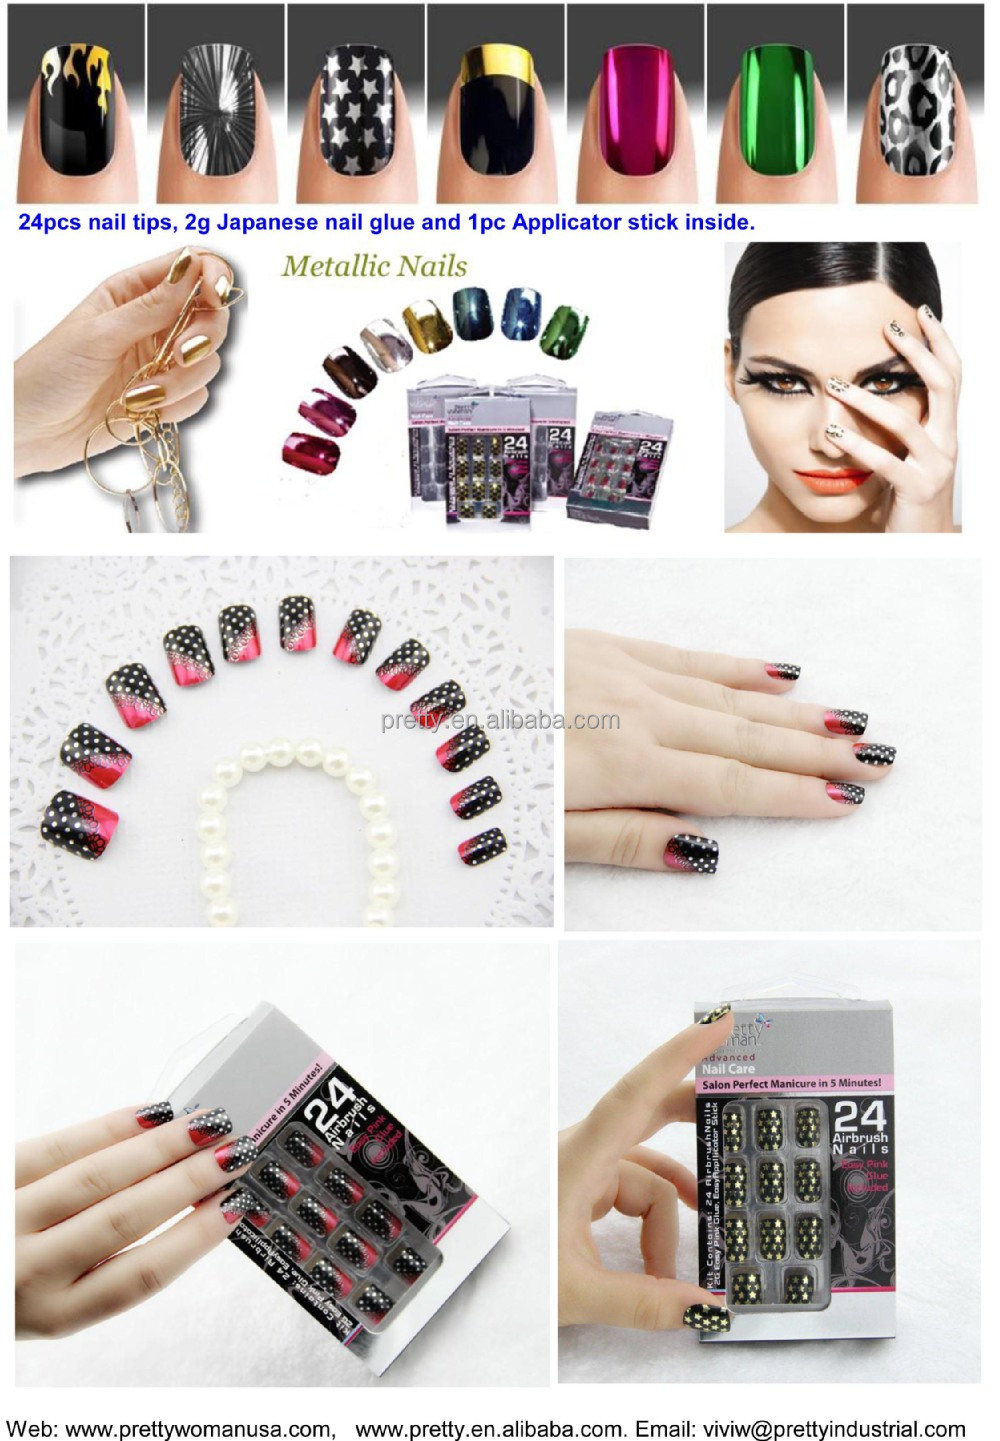 Kaleidoscope runway nail art 2015 spring and summer collection 24PCS full cover metallic nail tips